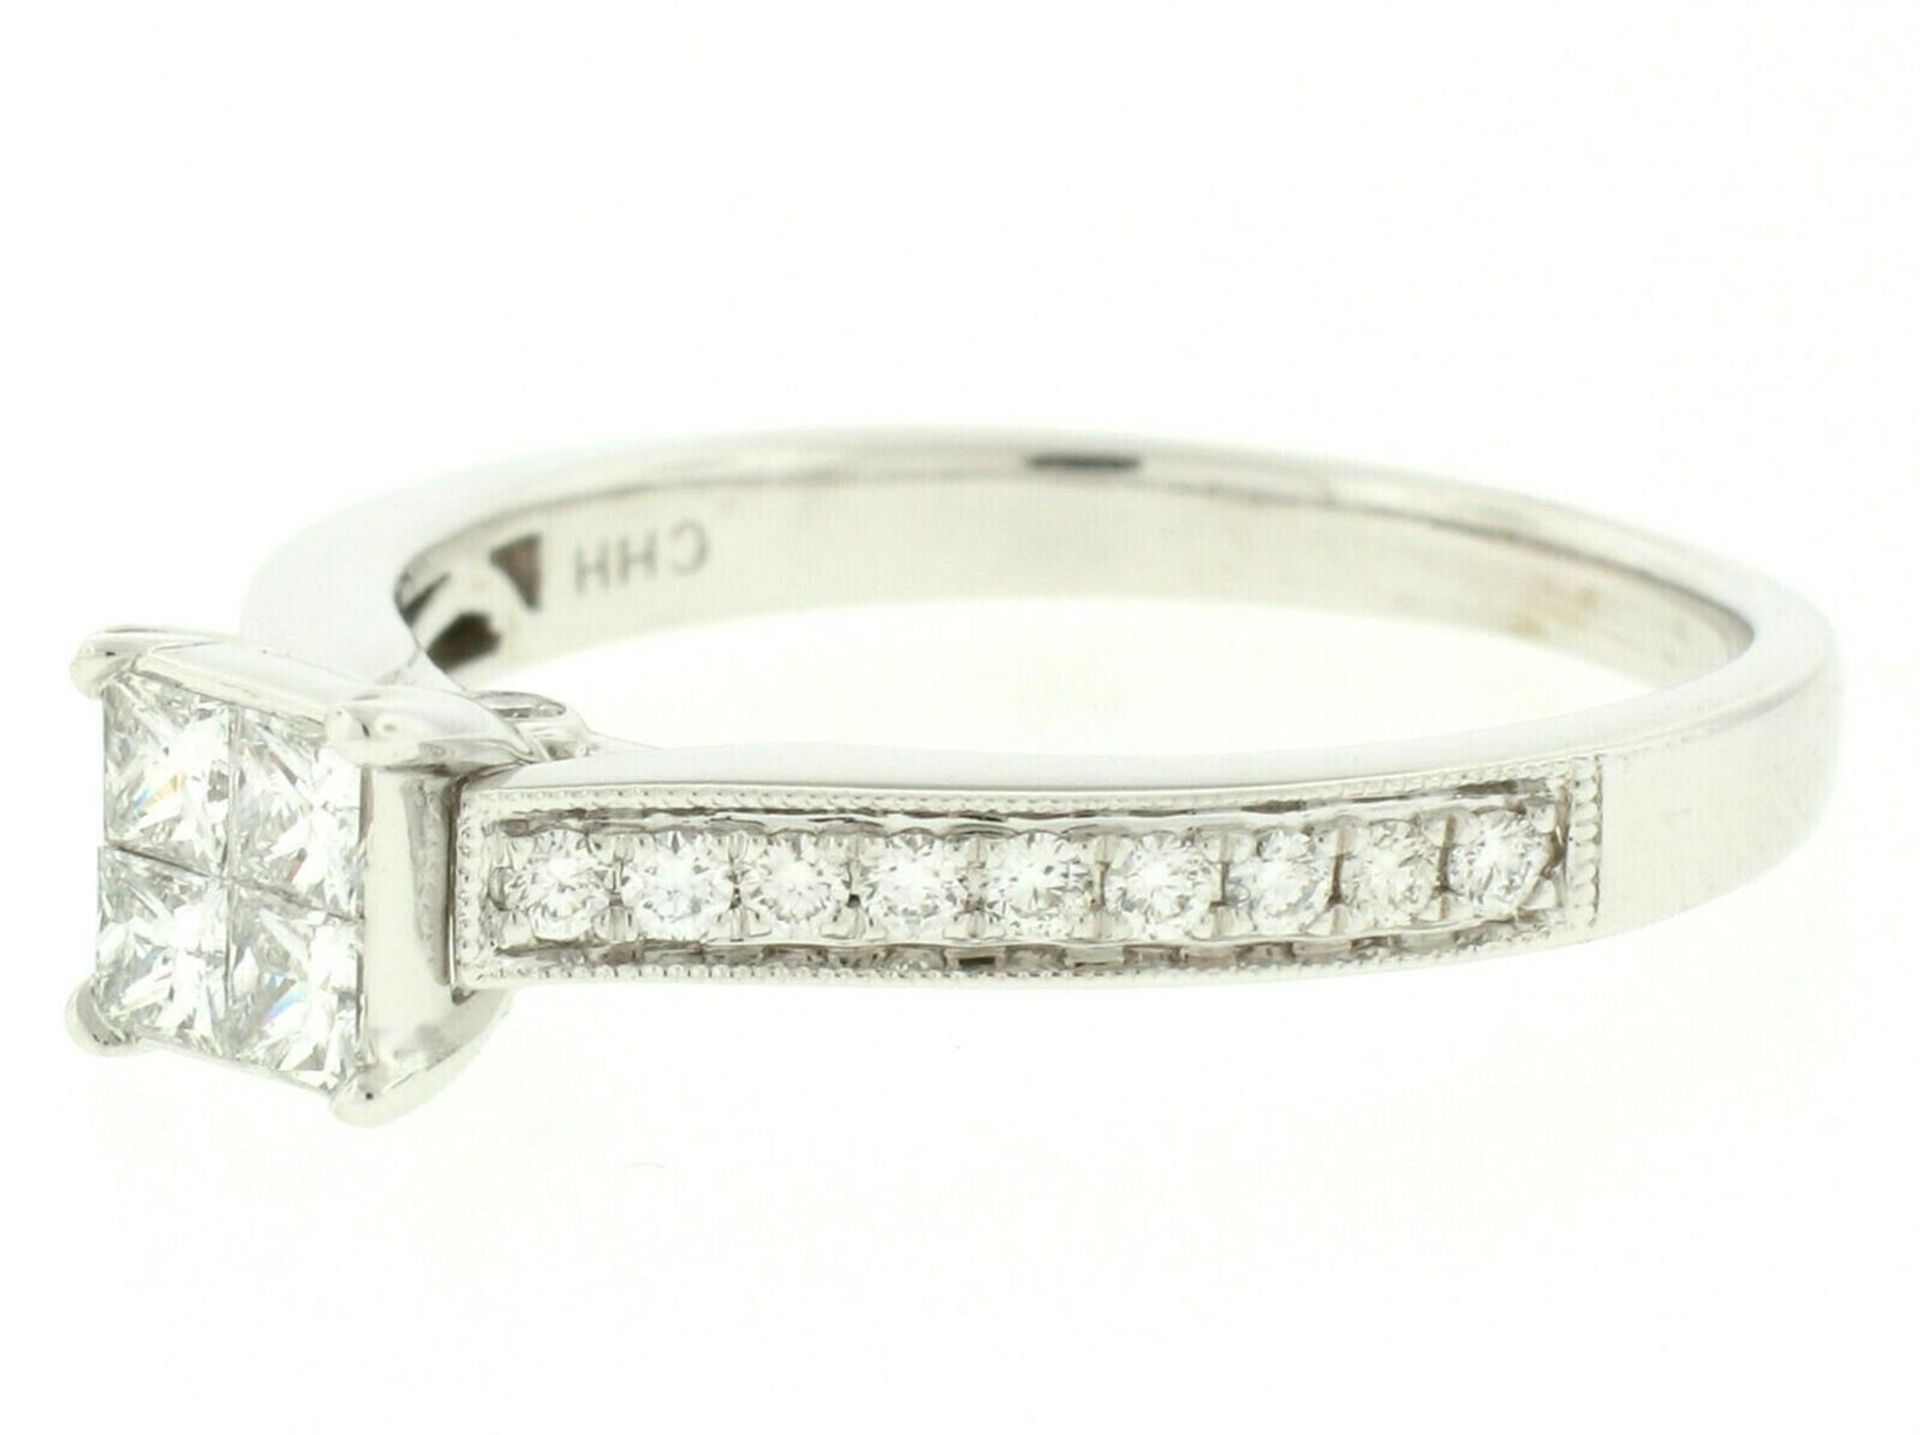 14k White Gold 0.79ctw Illusion Solitaire Princess Cut Diamond Engagement Ring - Image 2 of 8